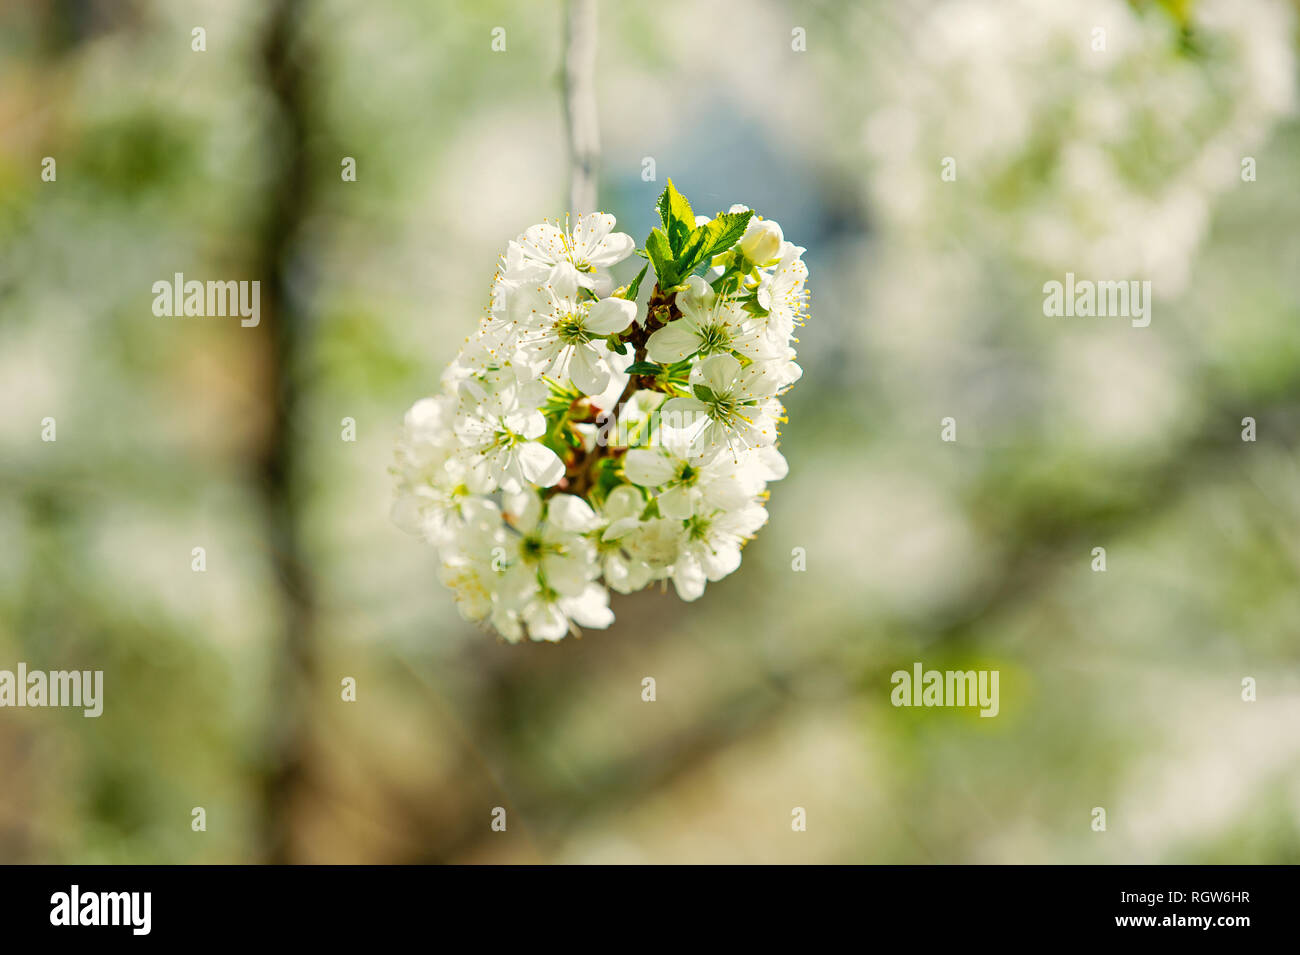 Blossoming cherry branch with white flowers on blurred background. Spring season concept. Blossom, bloom, flowering. New life awakening. Nature, beauty, environment. - Stock Image